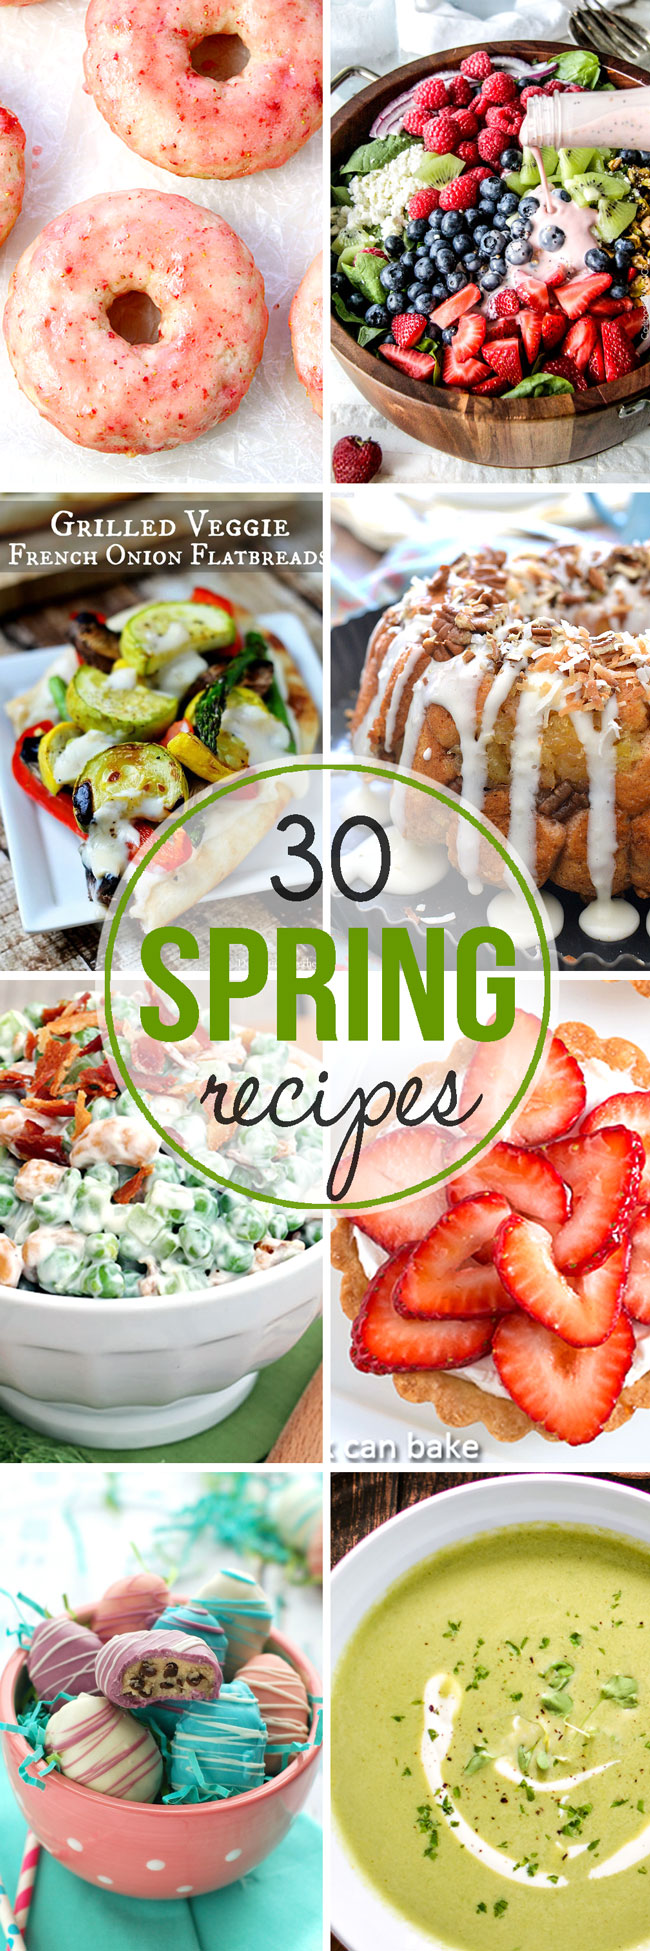 These 30 Recipes to Celebrate Spring are the best way to beat the winter blues and welcome the renewed joy and life of the season!